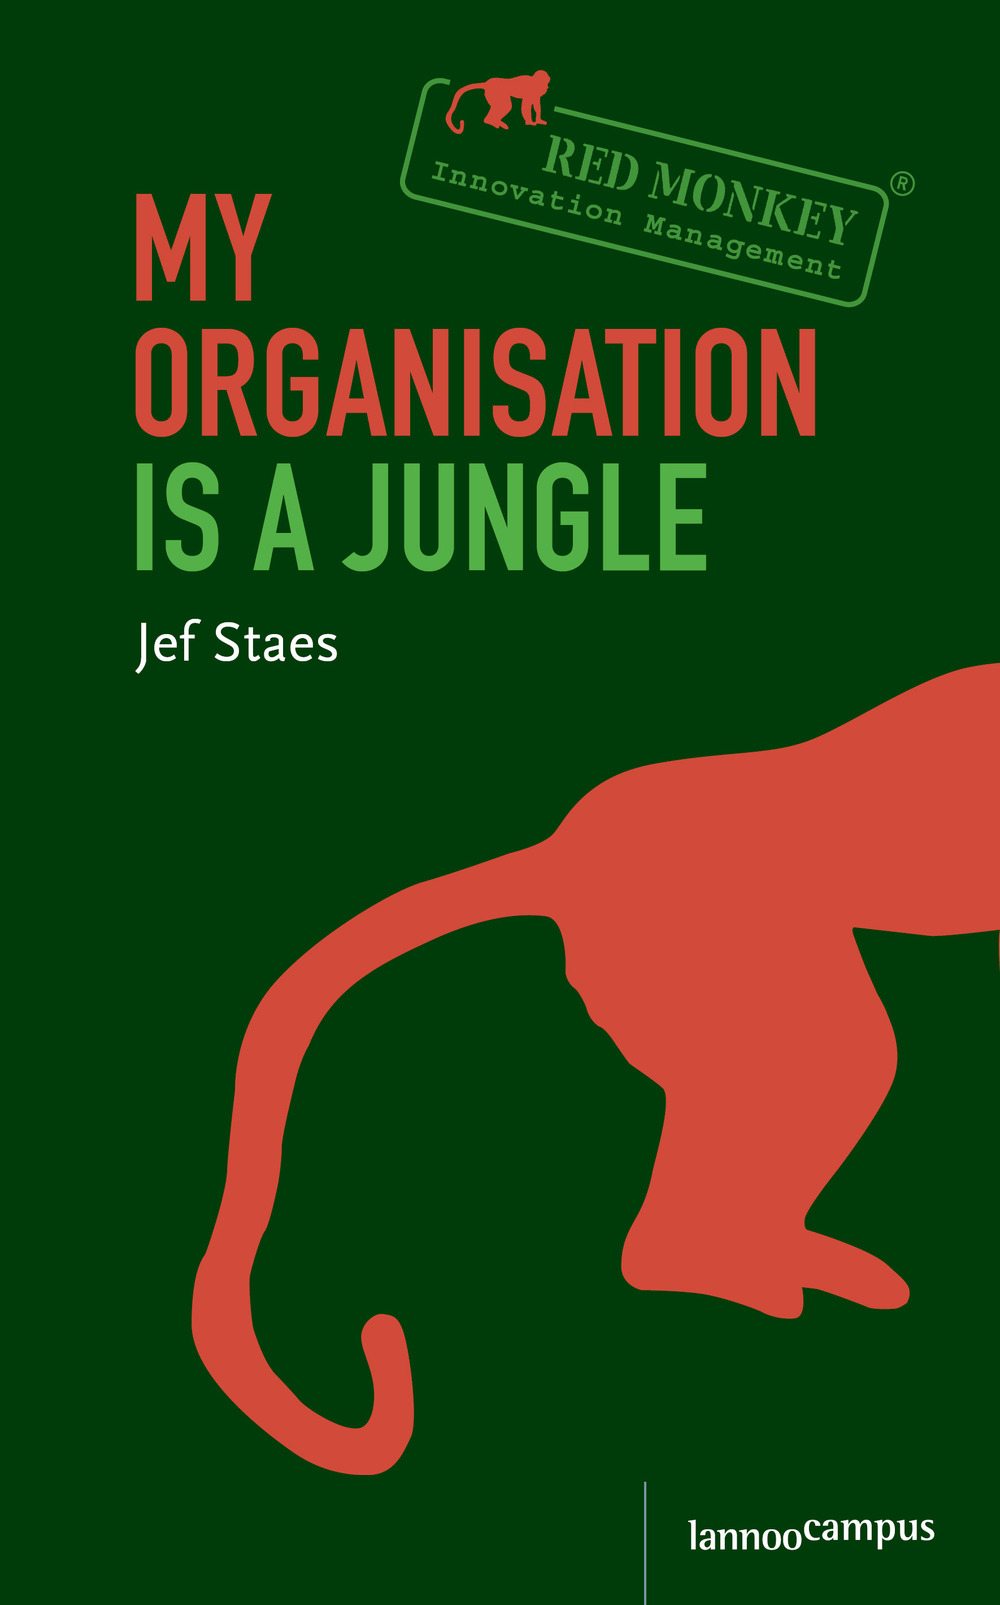 Cover - My organisation is a jungle